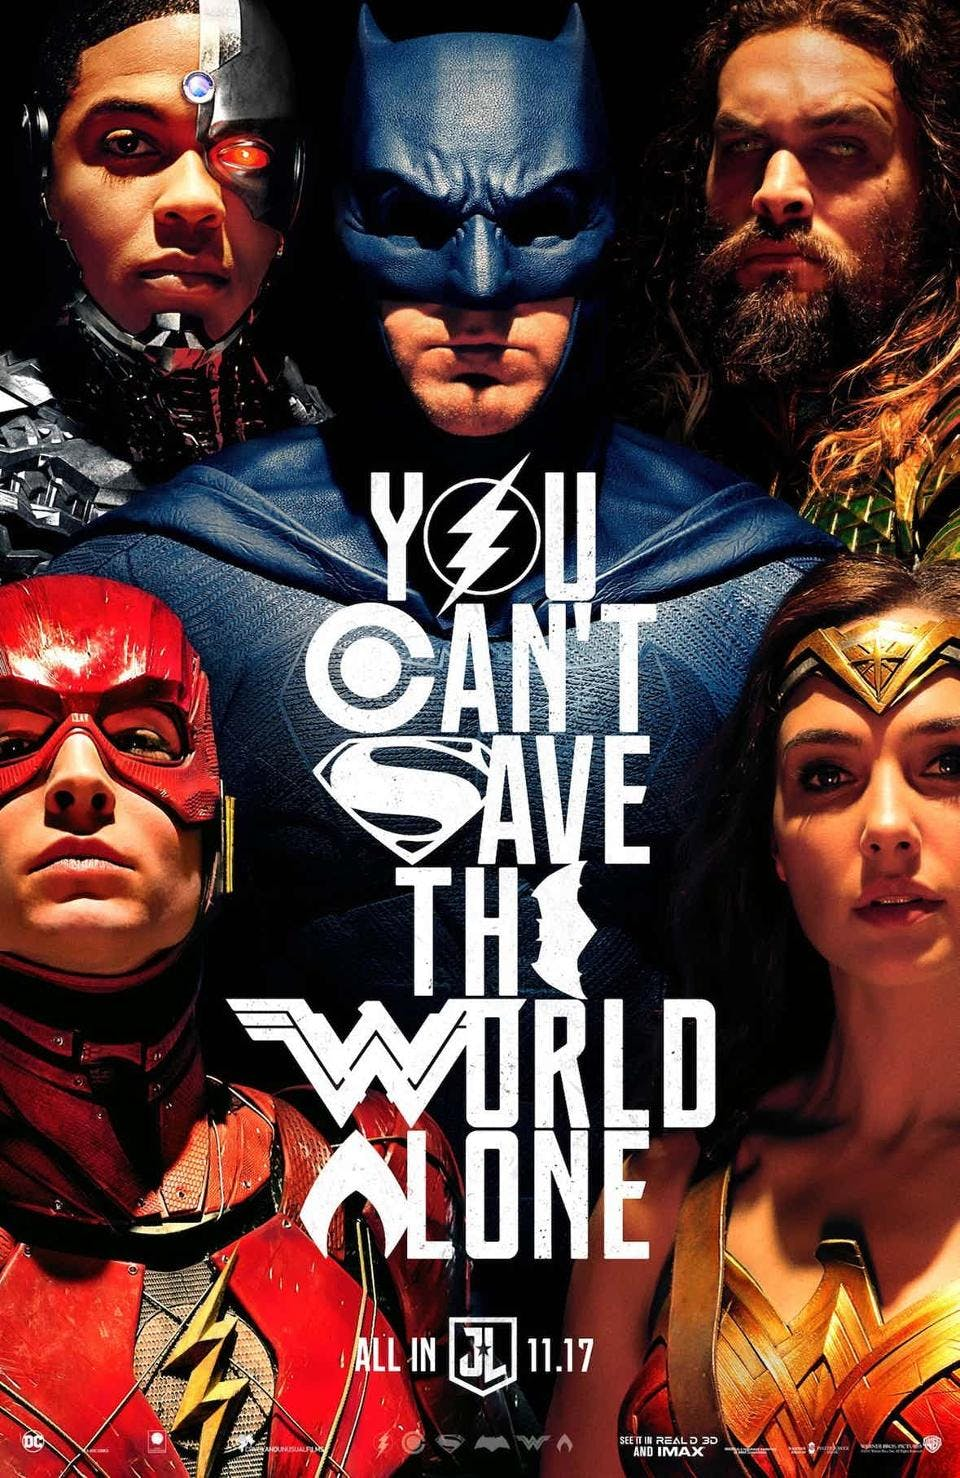 Awesome Justice League poster